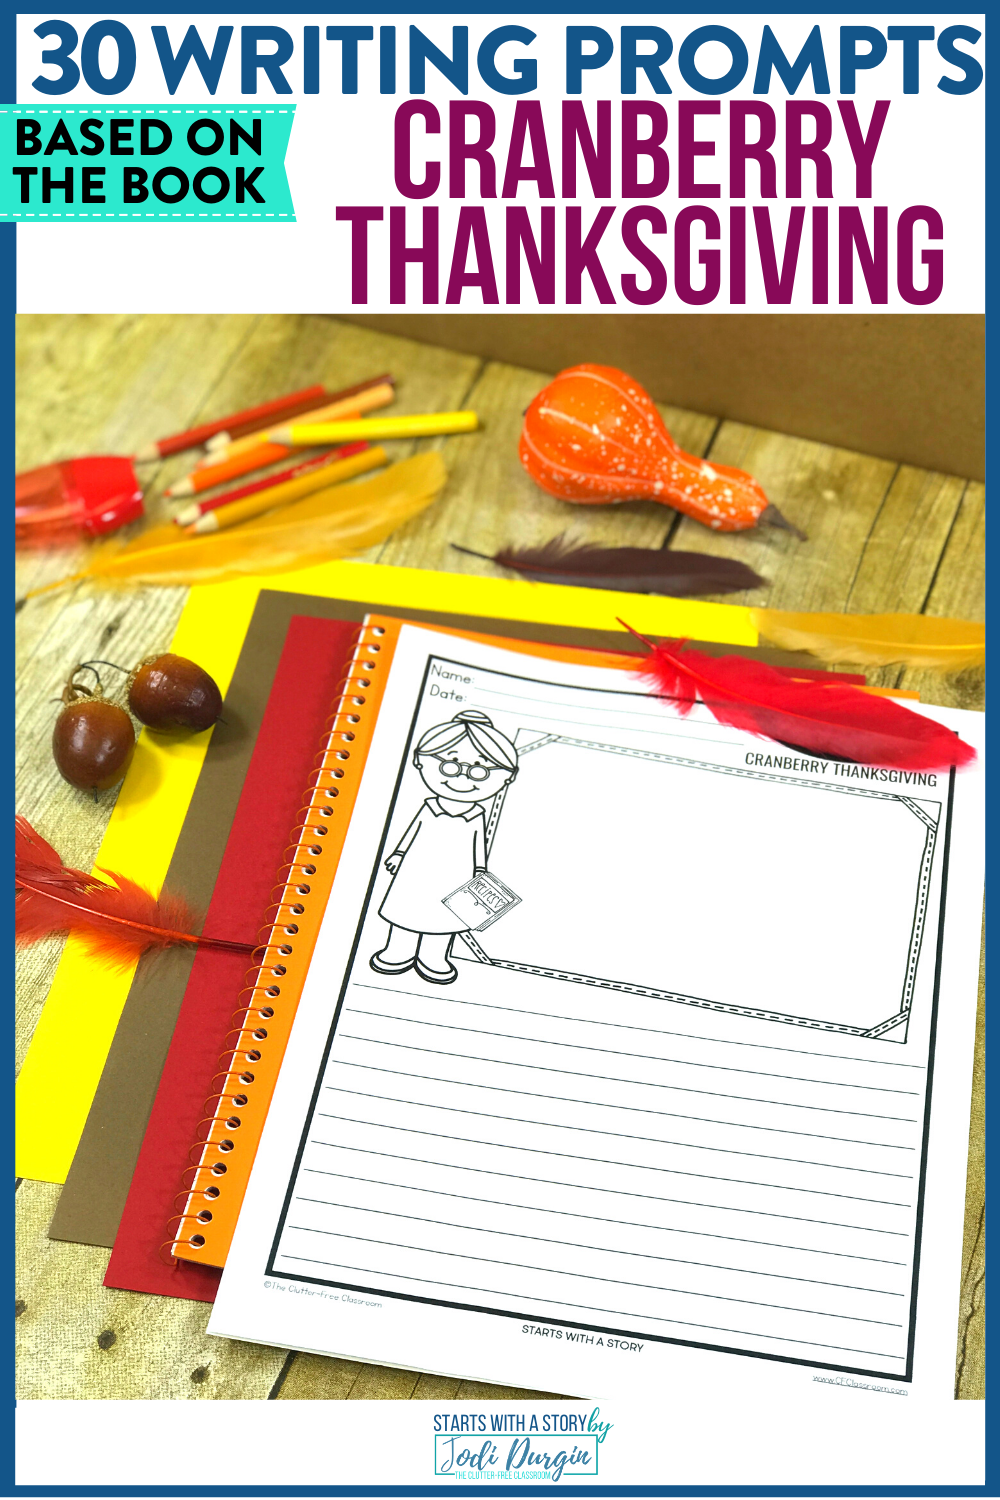 Cranberry Thanksgiving Writing Prompts Thanksgiving Writing Prompts Thanksgiving Writing Third Grade Activities [ 1500 x 1000 Pixel ]